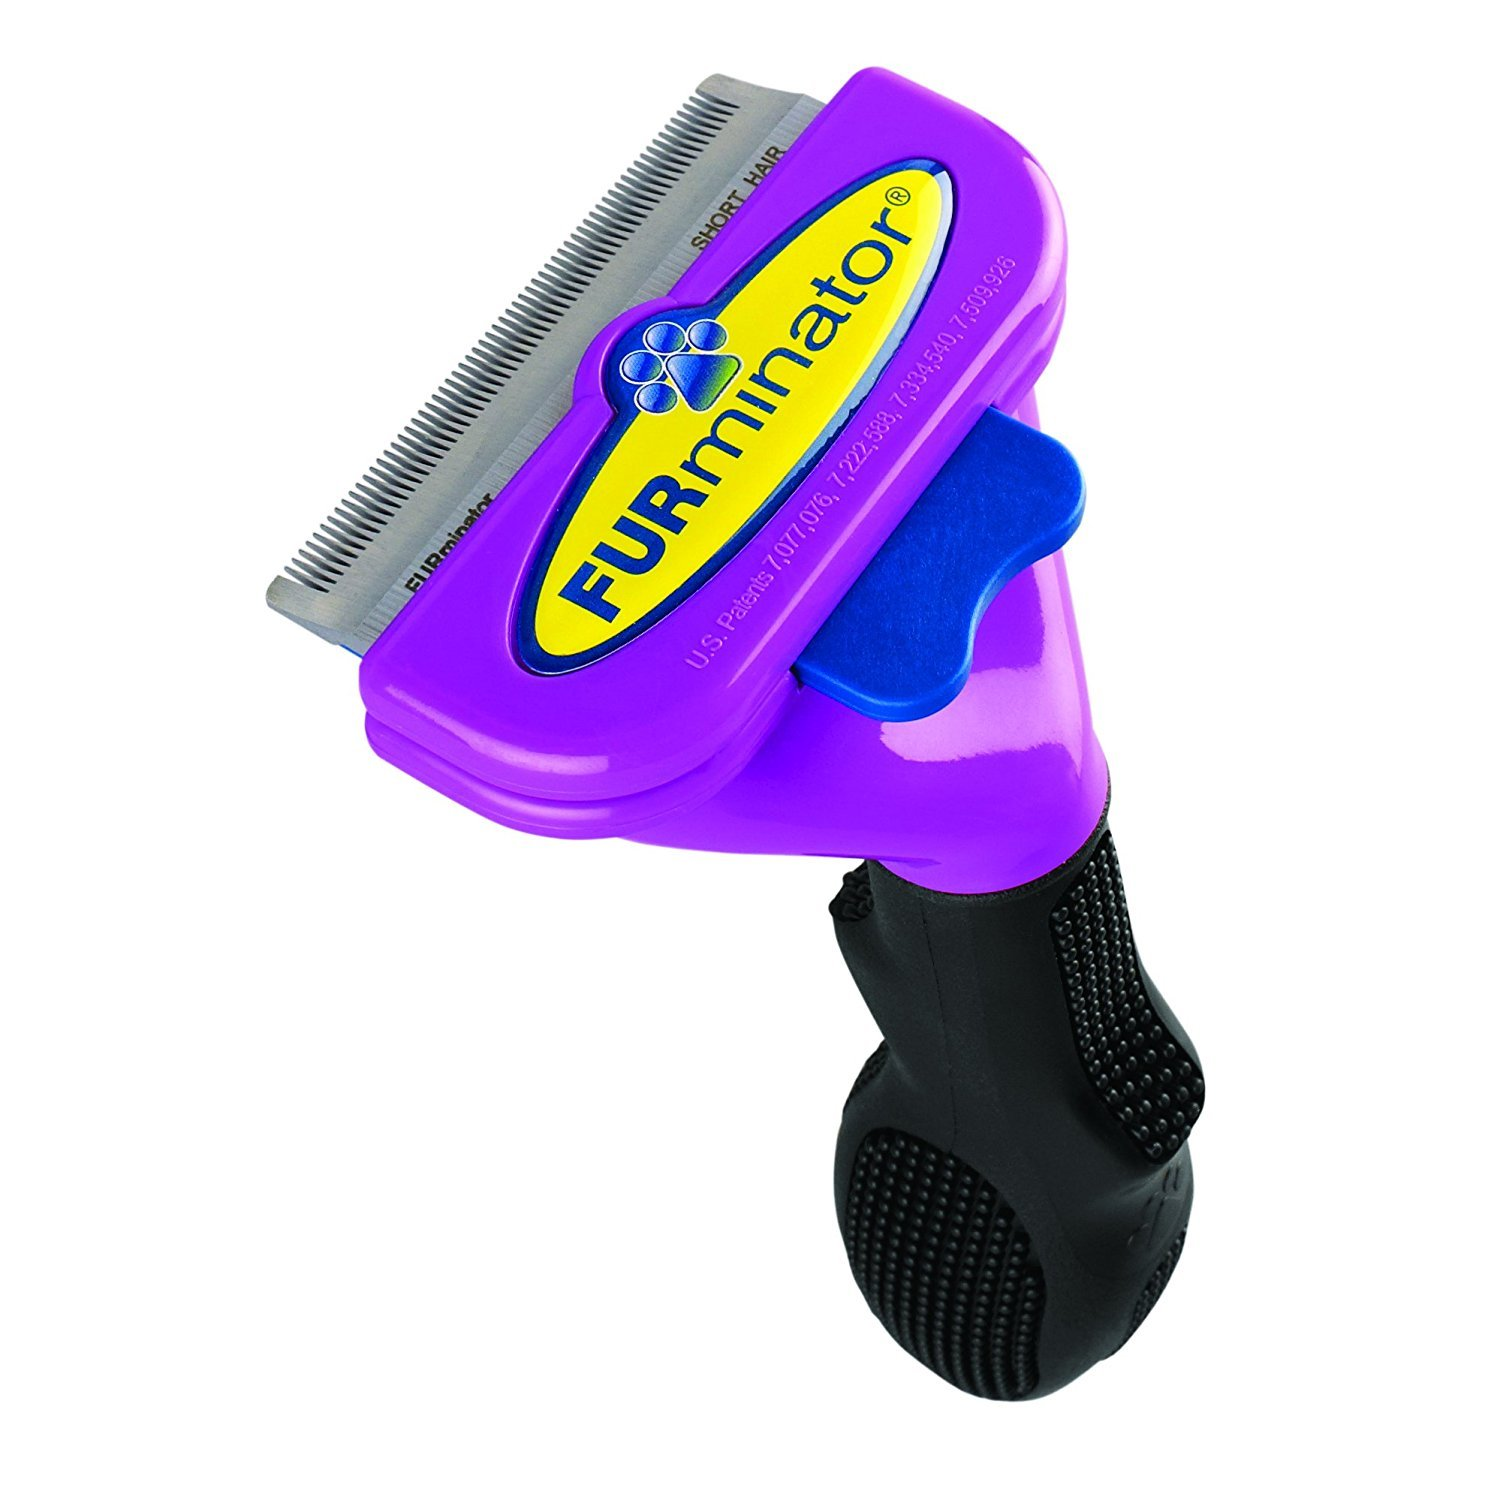 FURminator Short Hair Deshedding Tool for Large Cats (FL) 502015